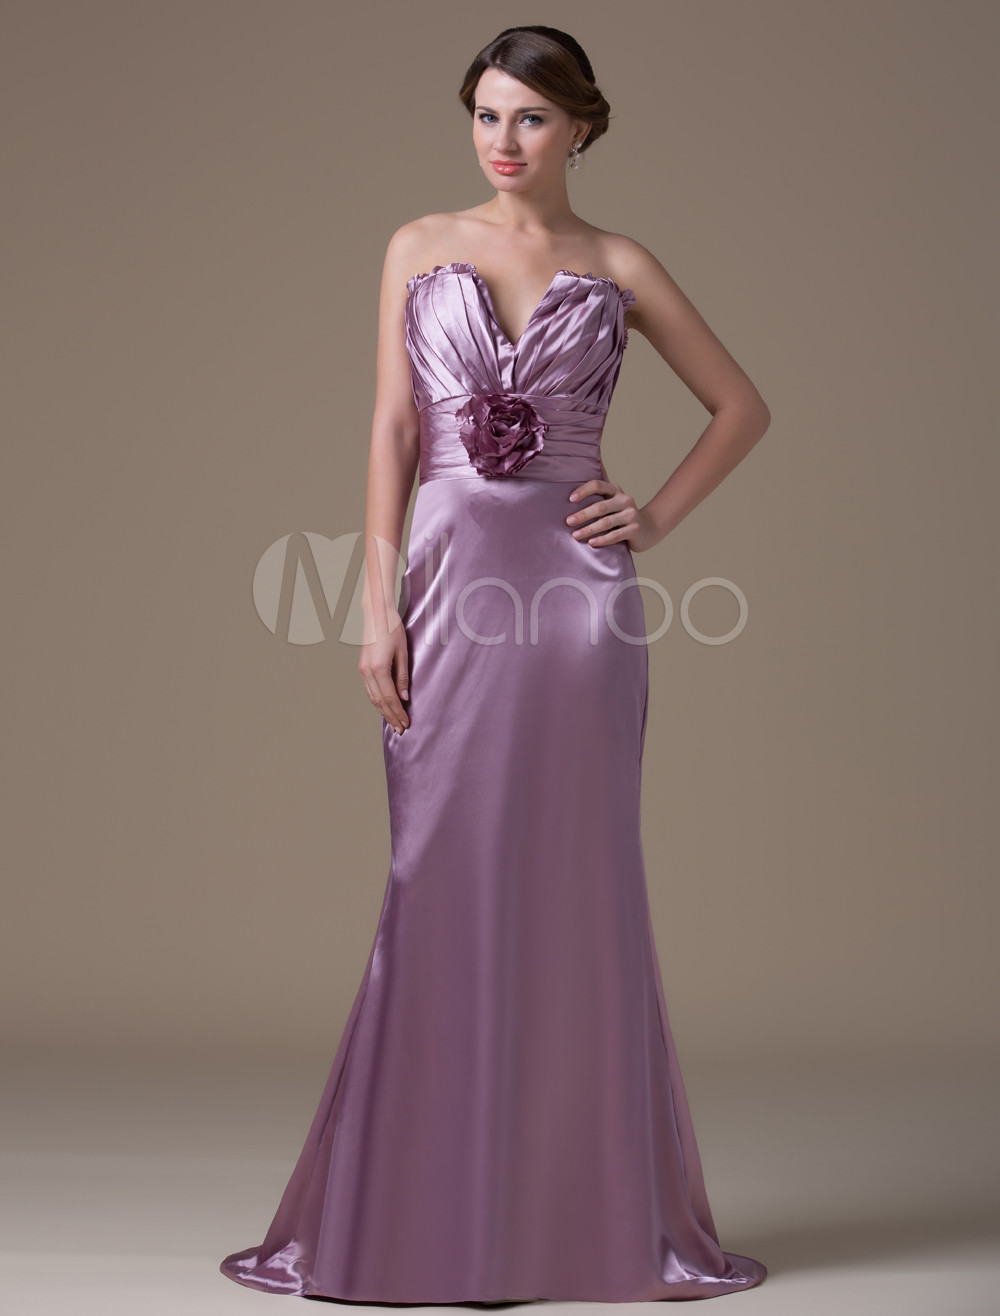 Light Purple Fashion A-line Spandex Satin Maternity Bridesmaid Dress